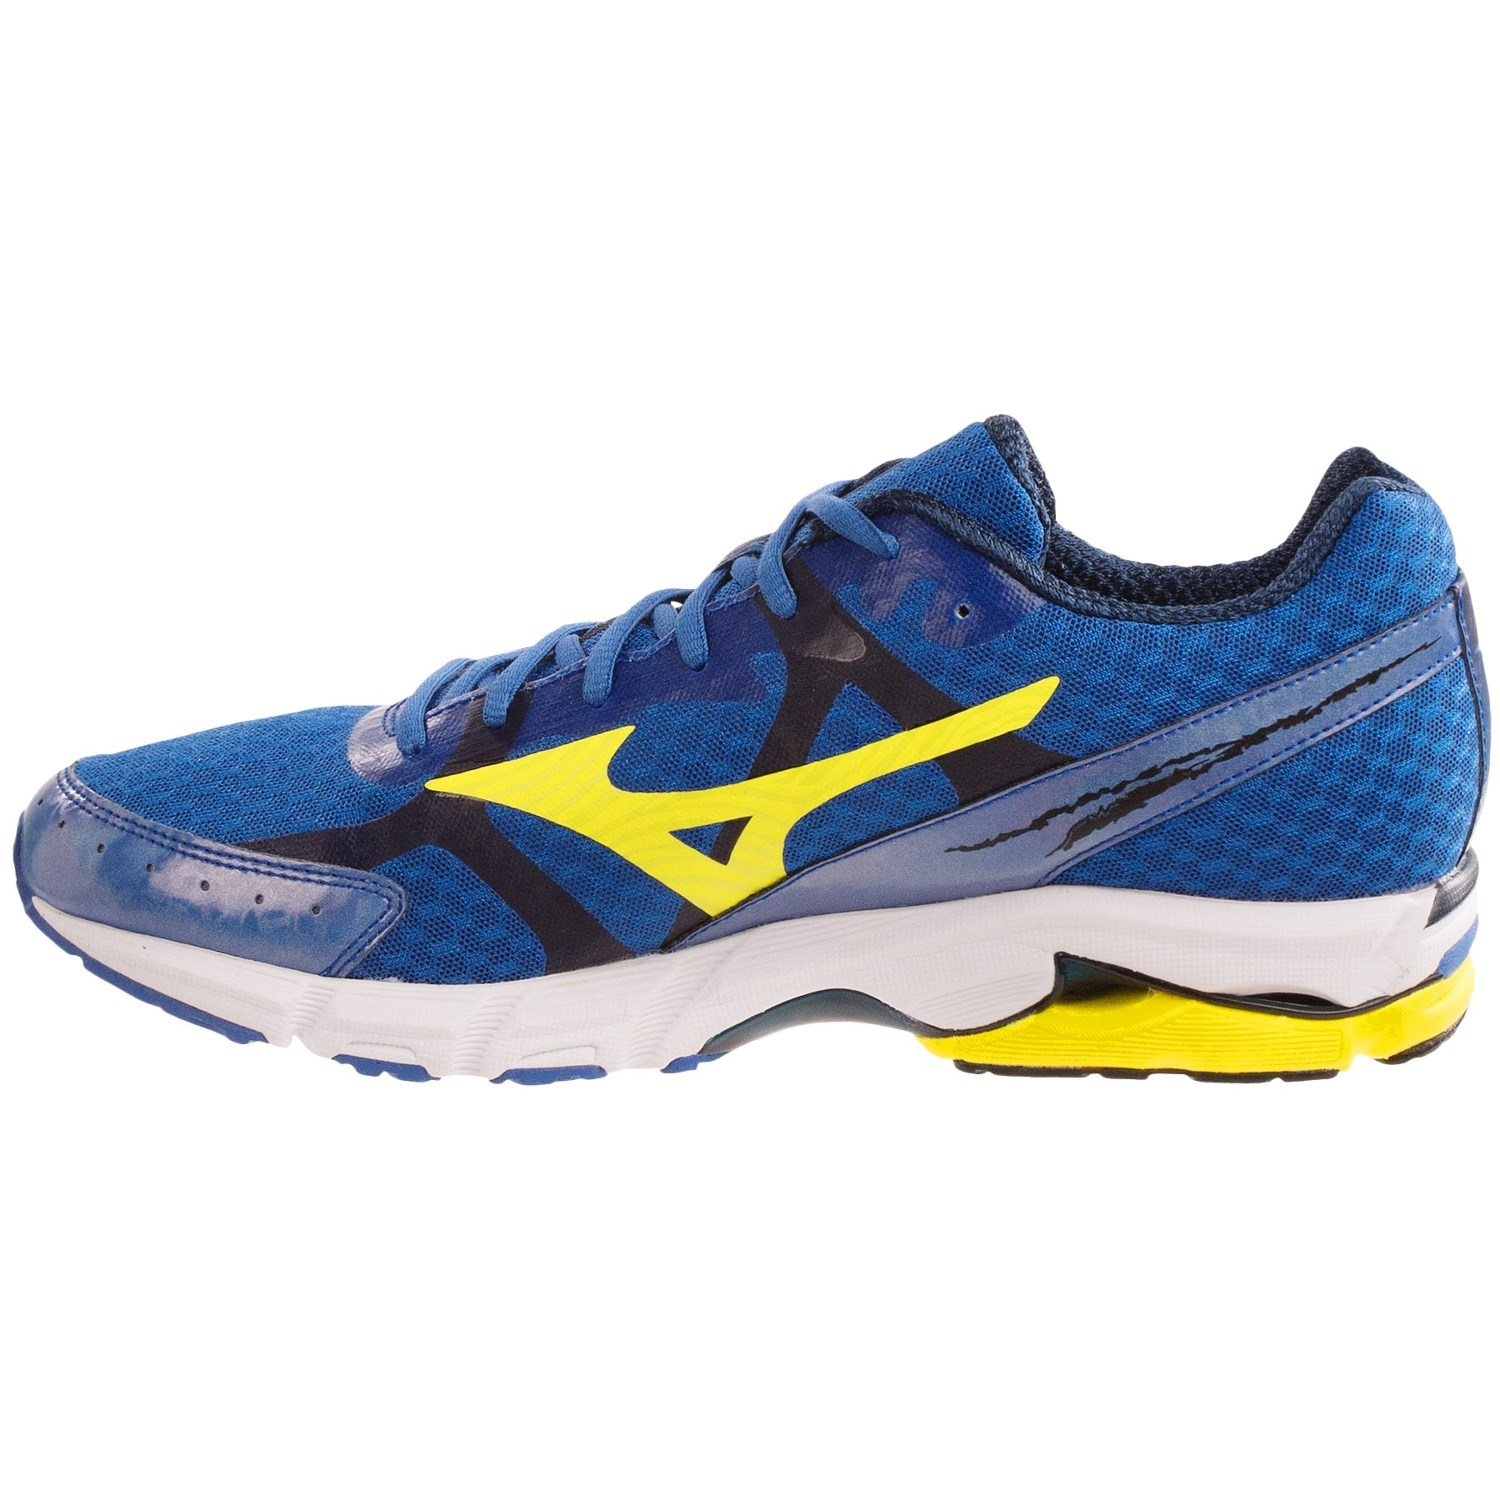 mizuno wave rider 17 running shoes for 8556w save 53